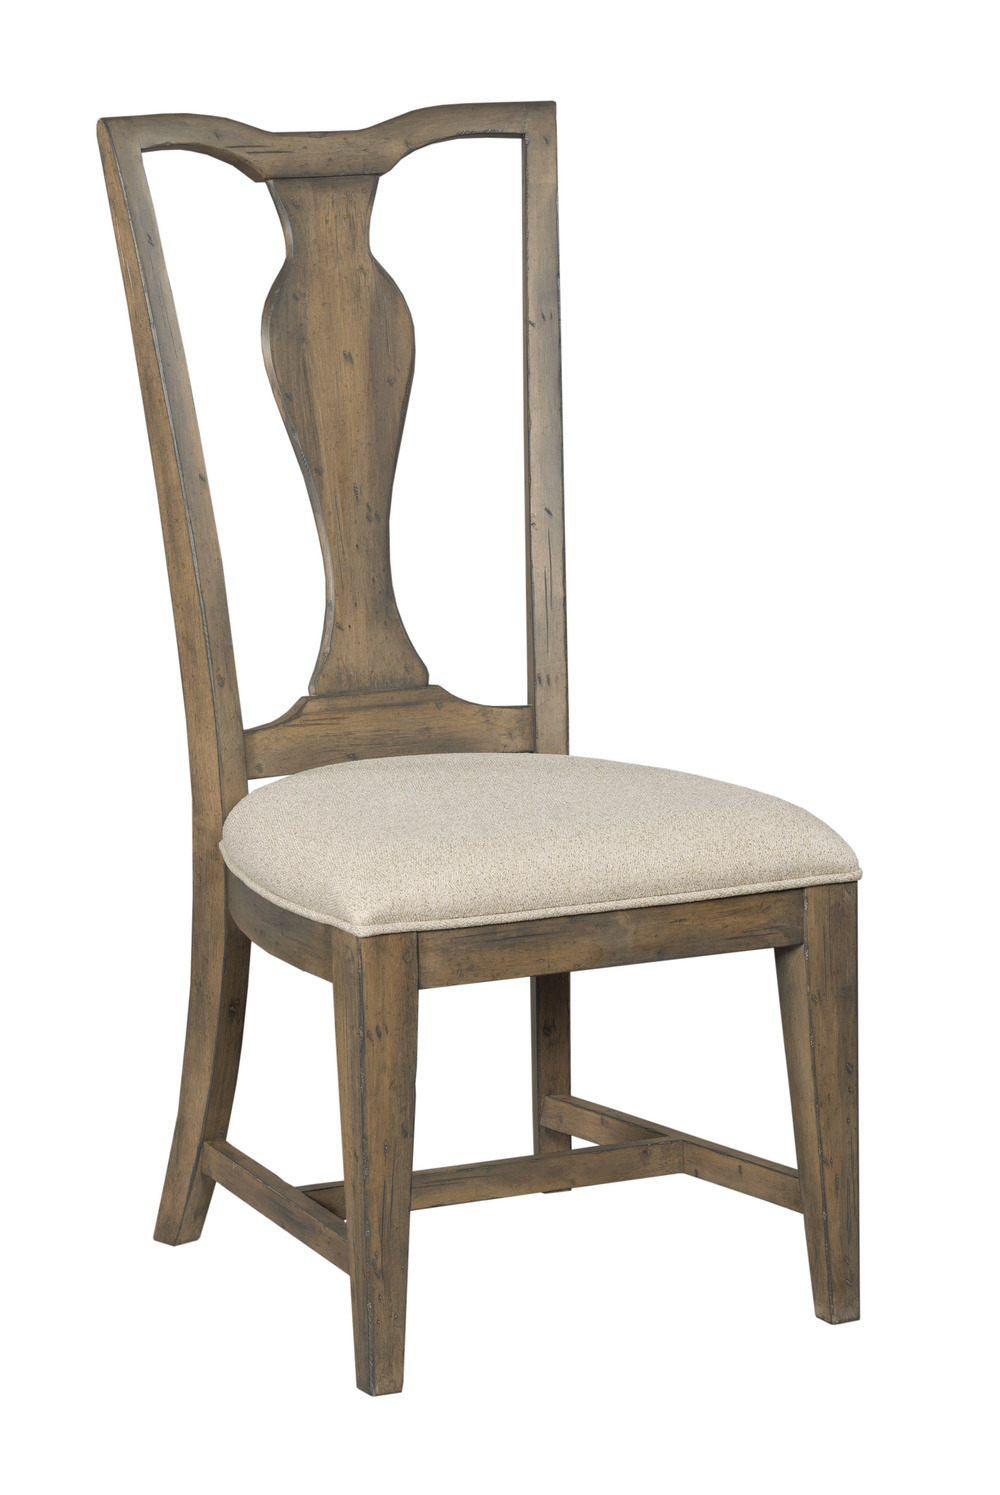 Kincaid Furniture - Copeland Side Chair